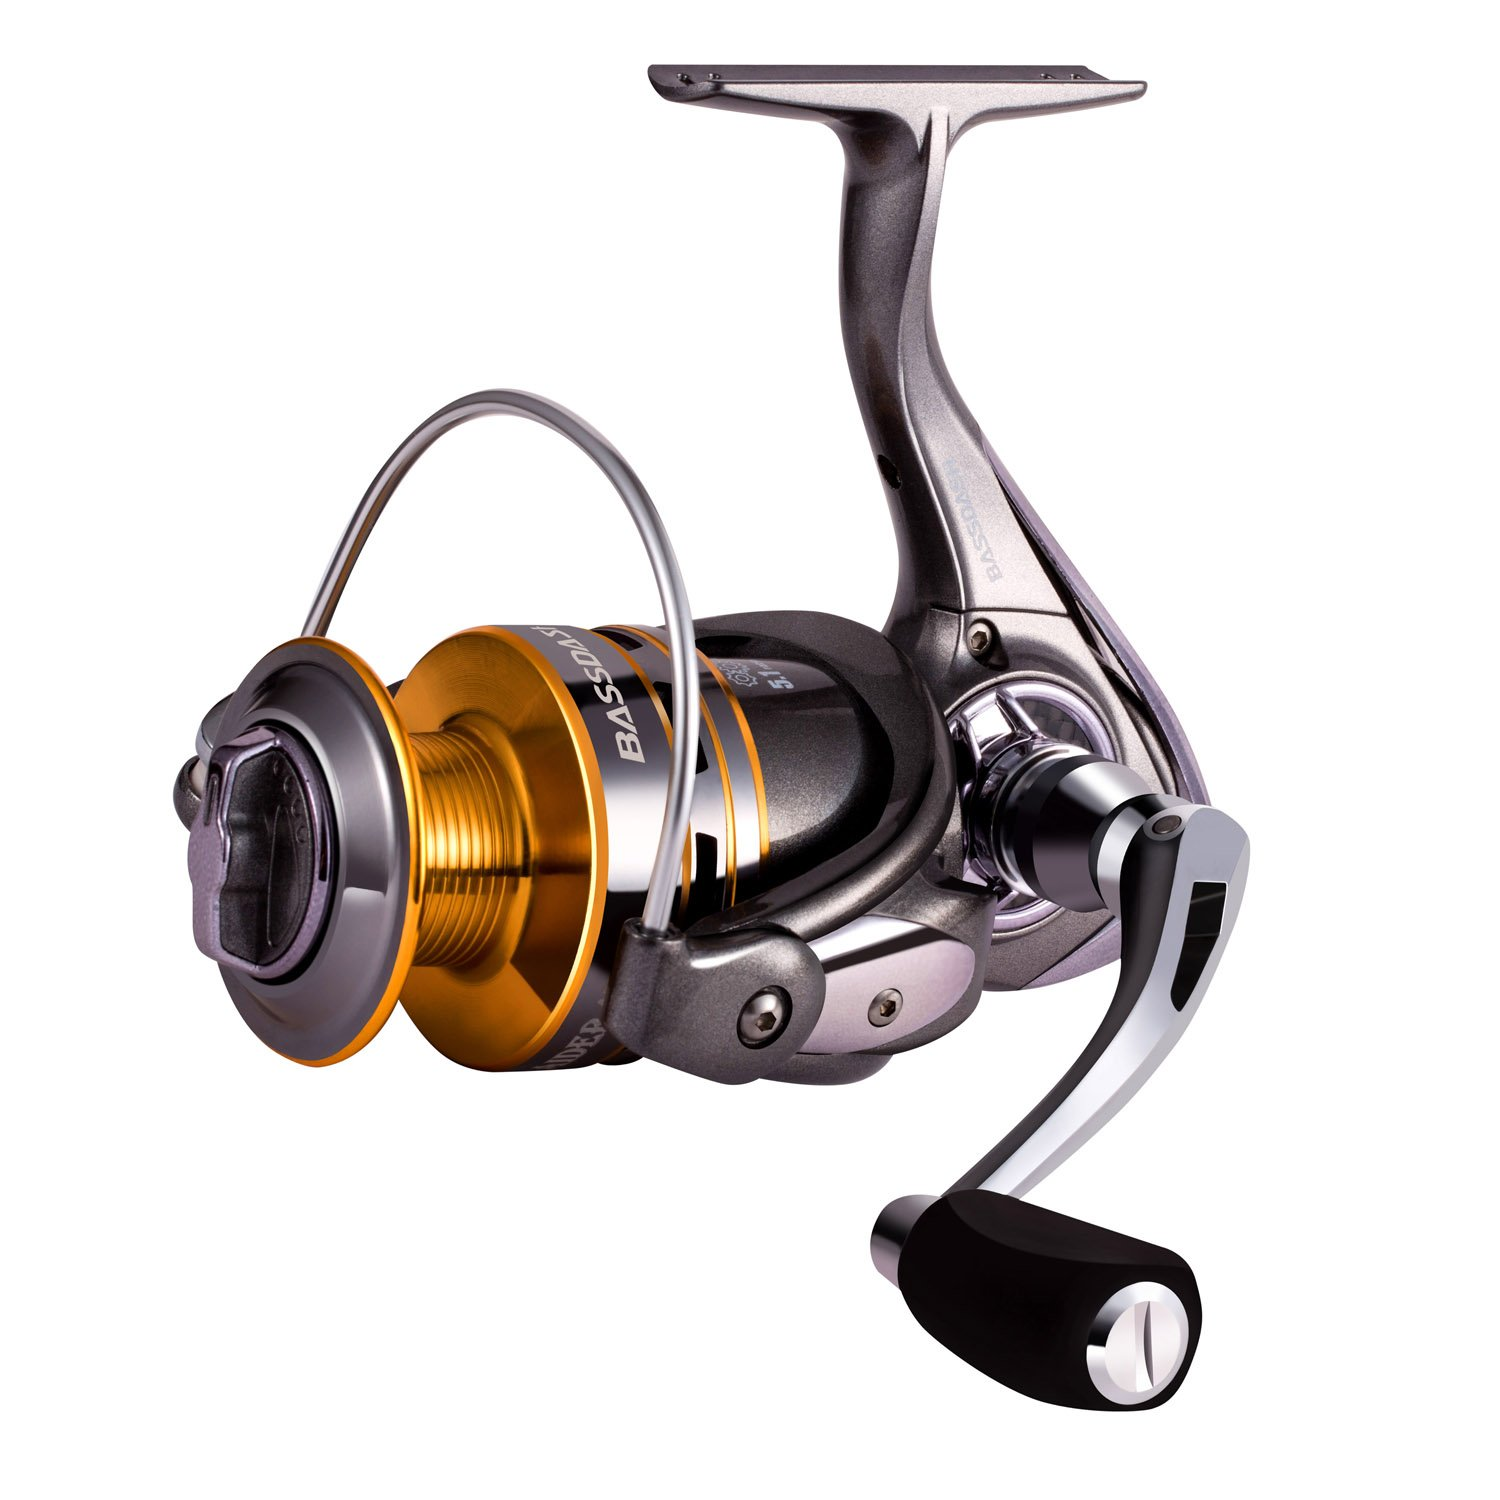 Bassdash Raider Spinning Fishing Reel, 9 1 Corrosion Resistant Bearings Including Indestructible TC4 Anti-Reverse, Carbon Fiber Drag, in Sizes 2000 3000 4000 for Saltwater or Freshwater